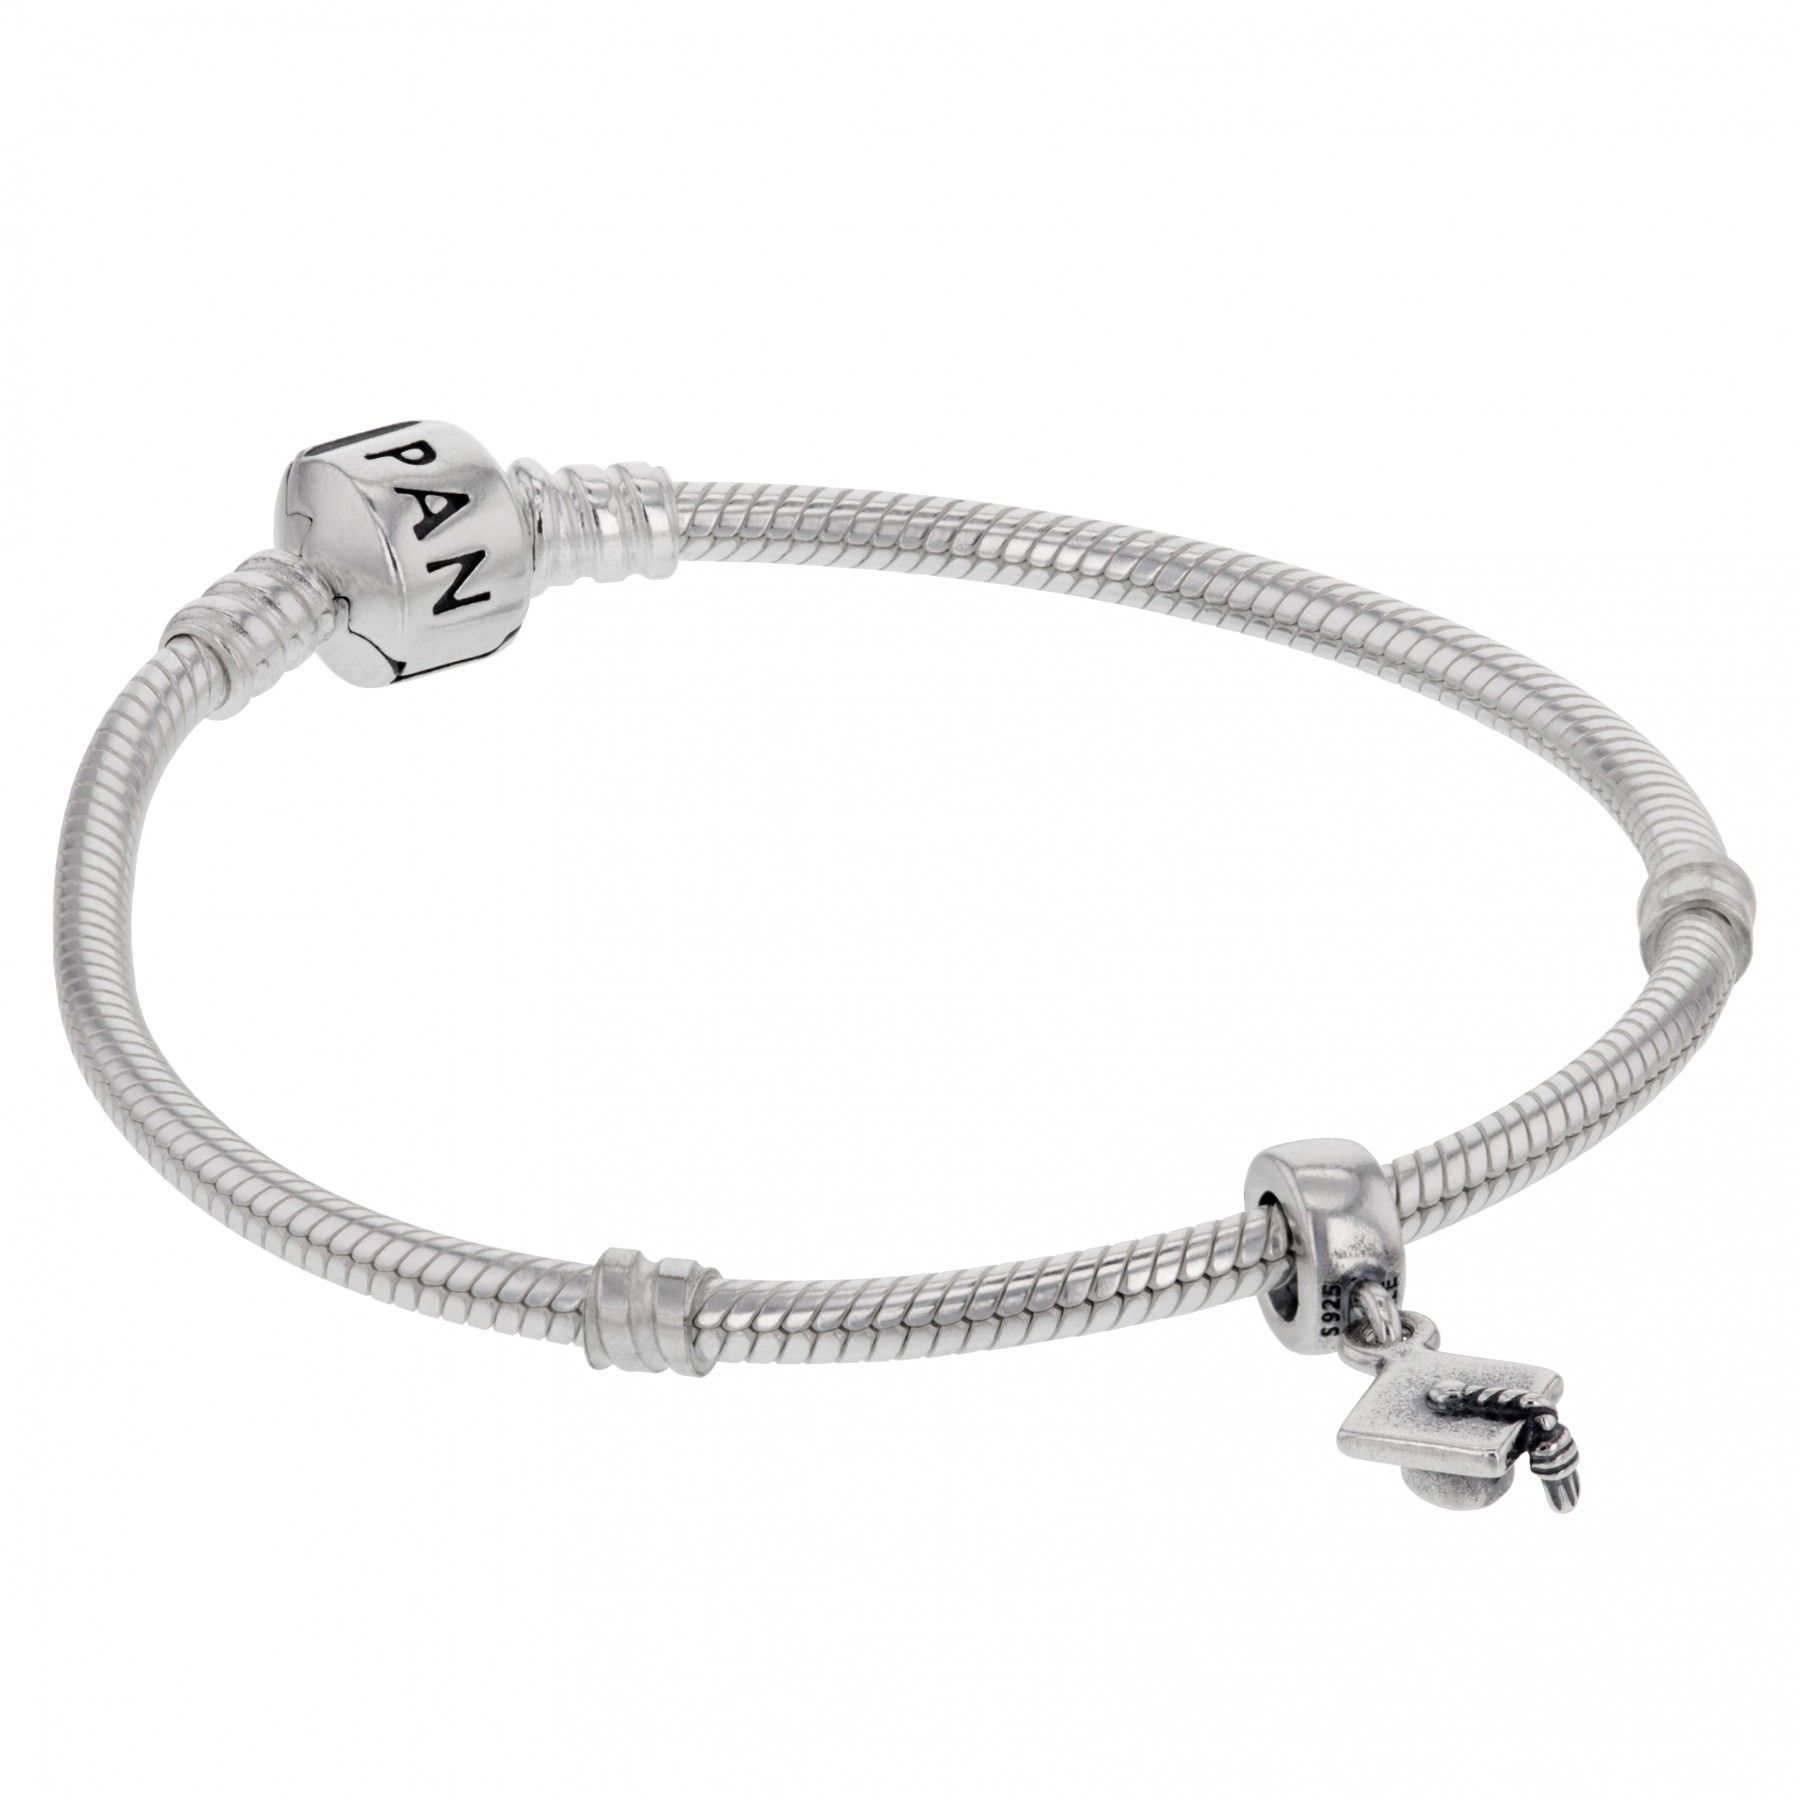 pandora forumbook charm pinterest ru charms bracelet best pin hit